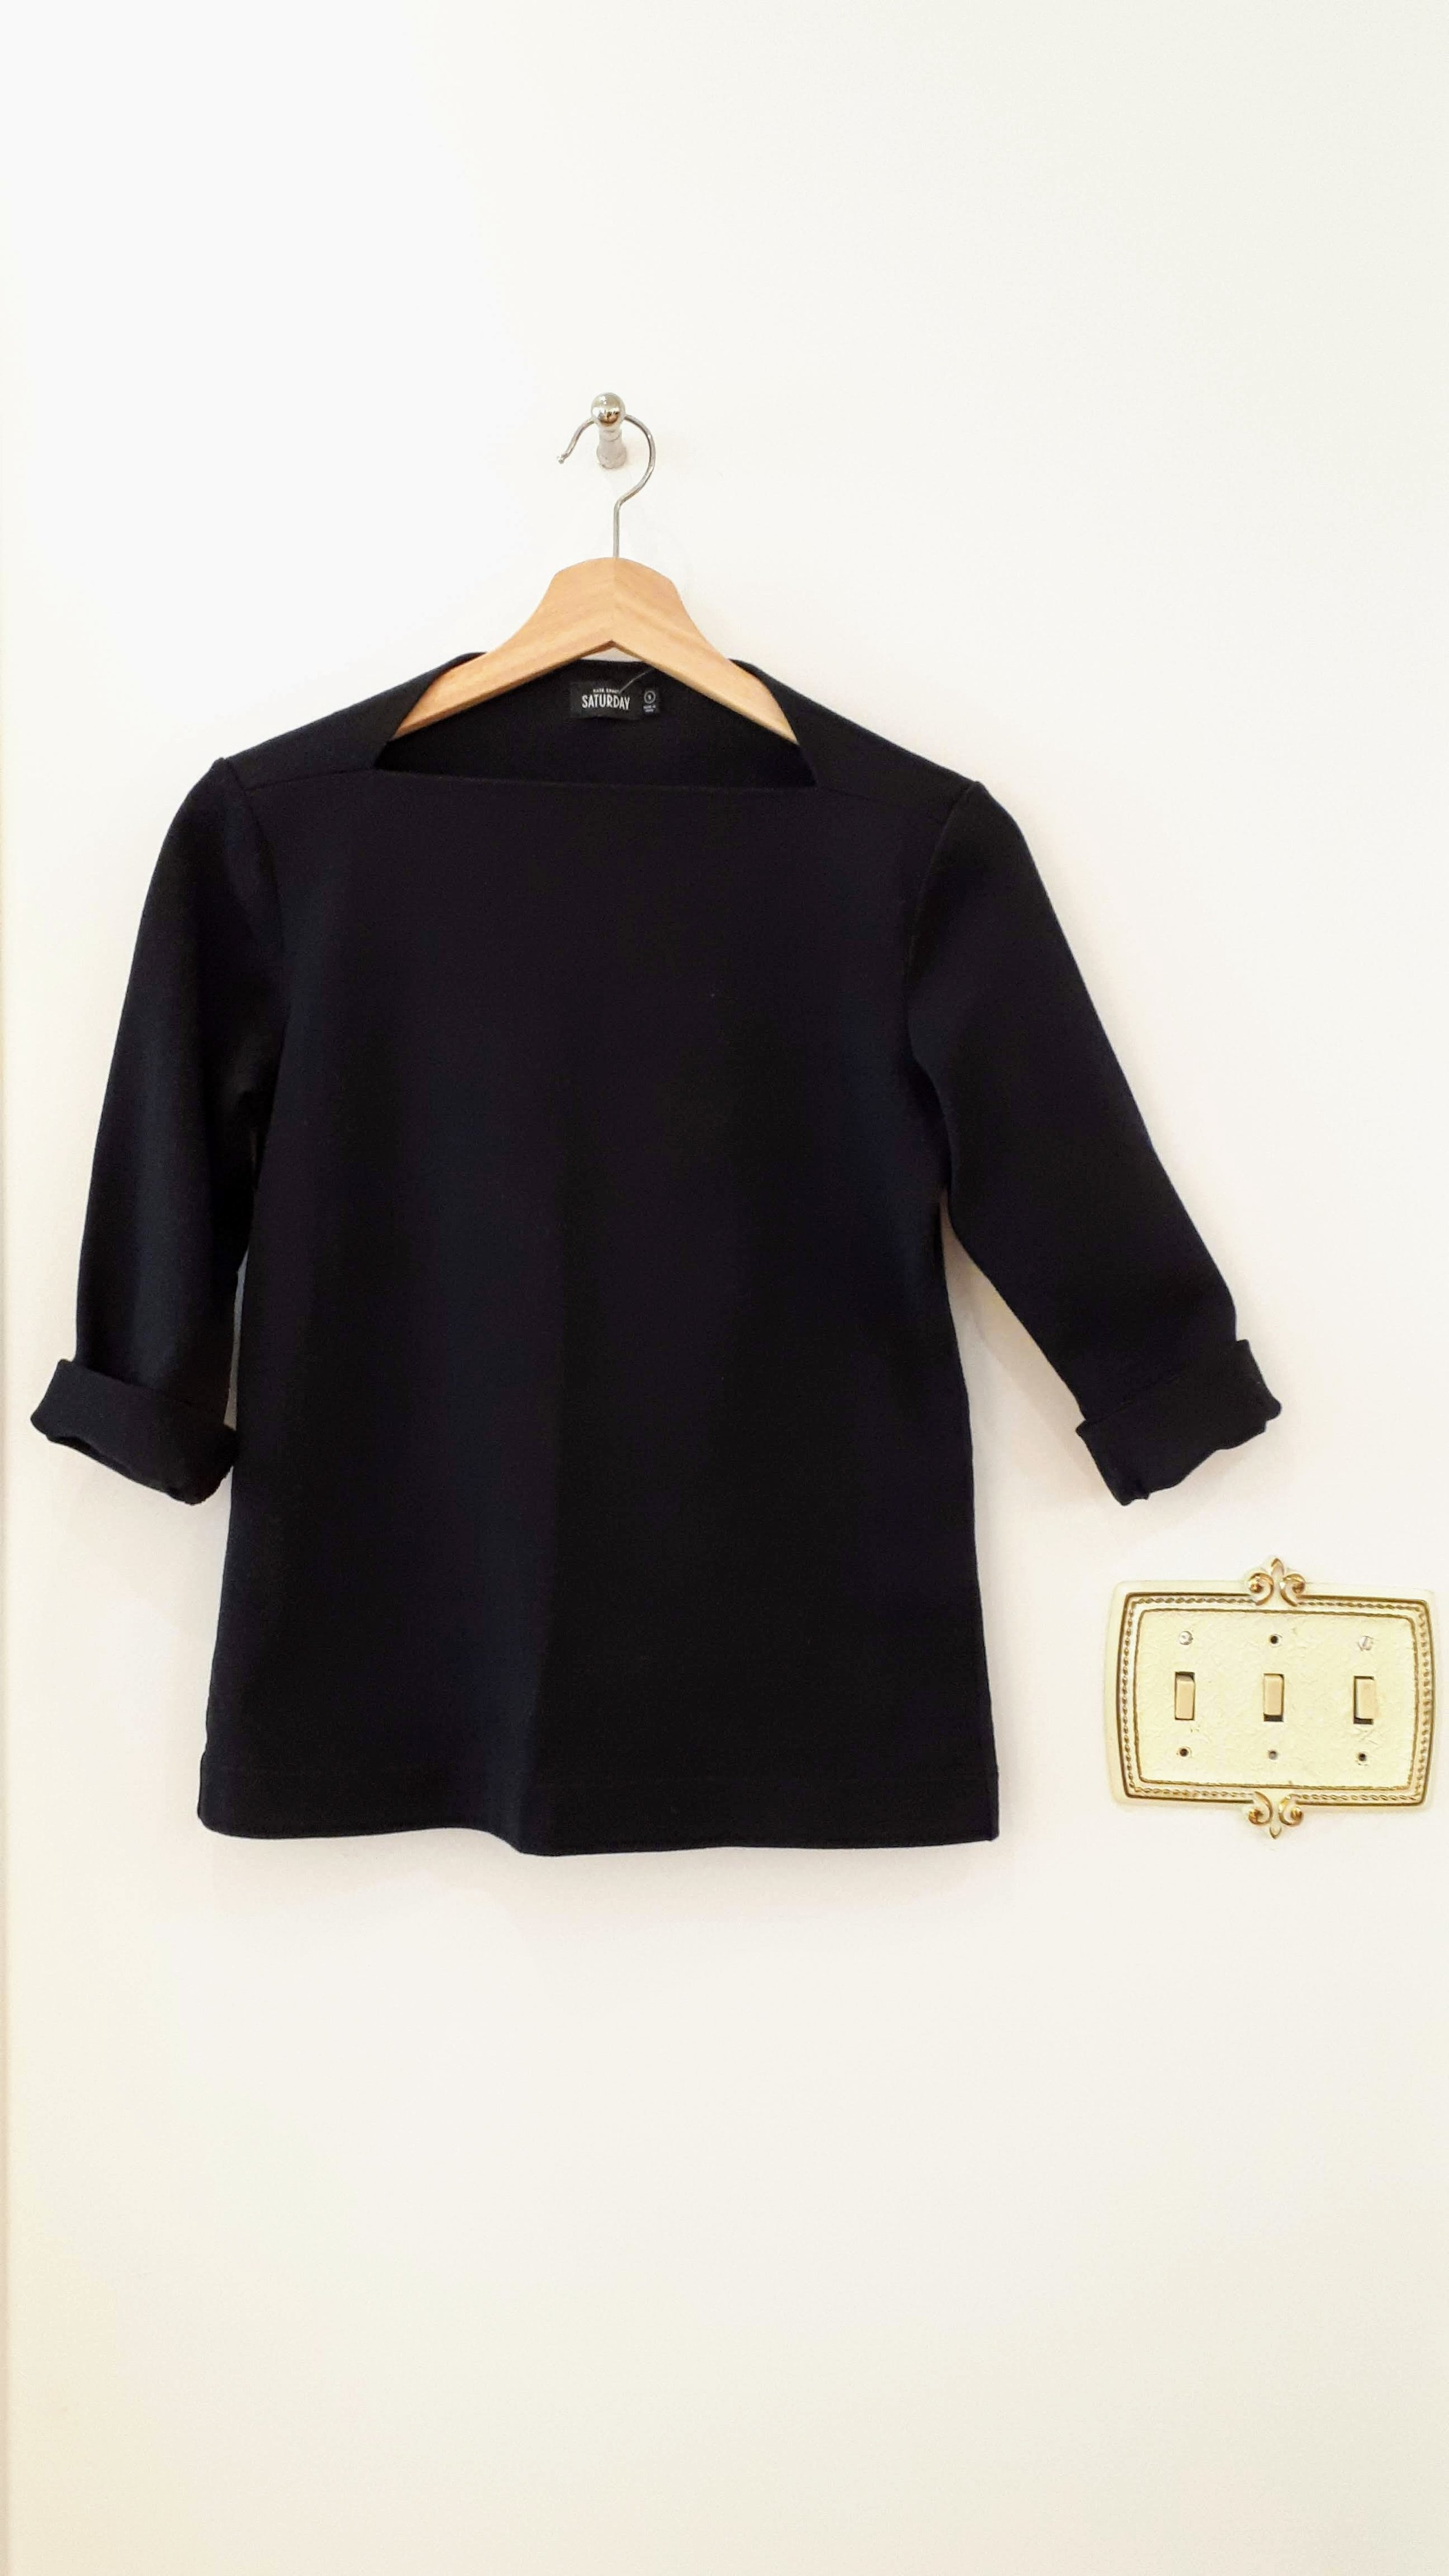 Kate Spade top; Size S, $68